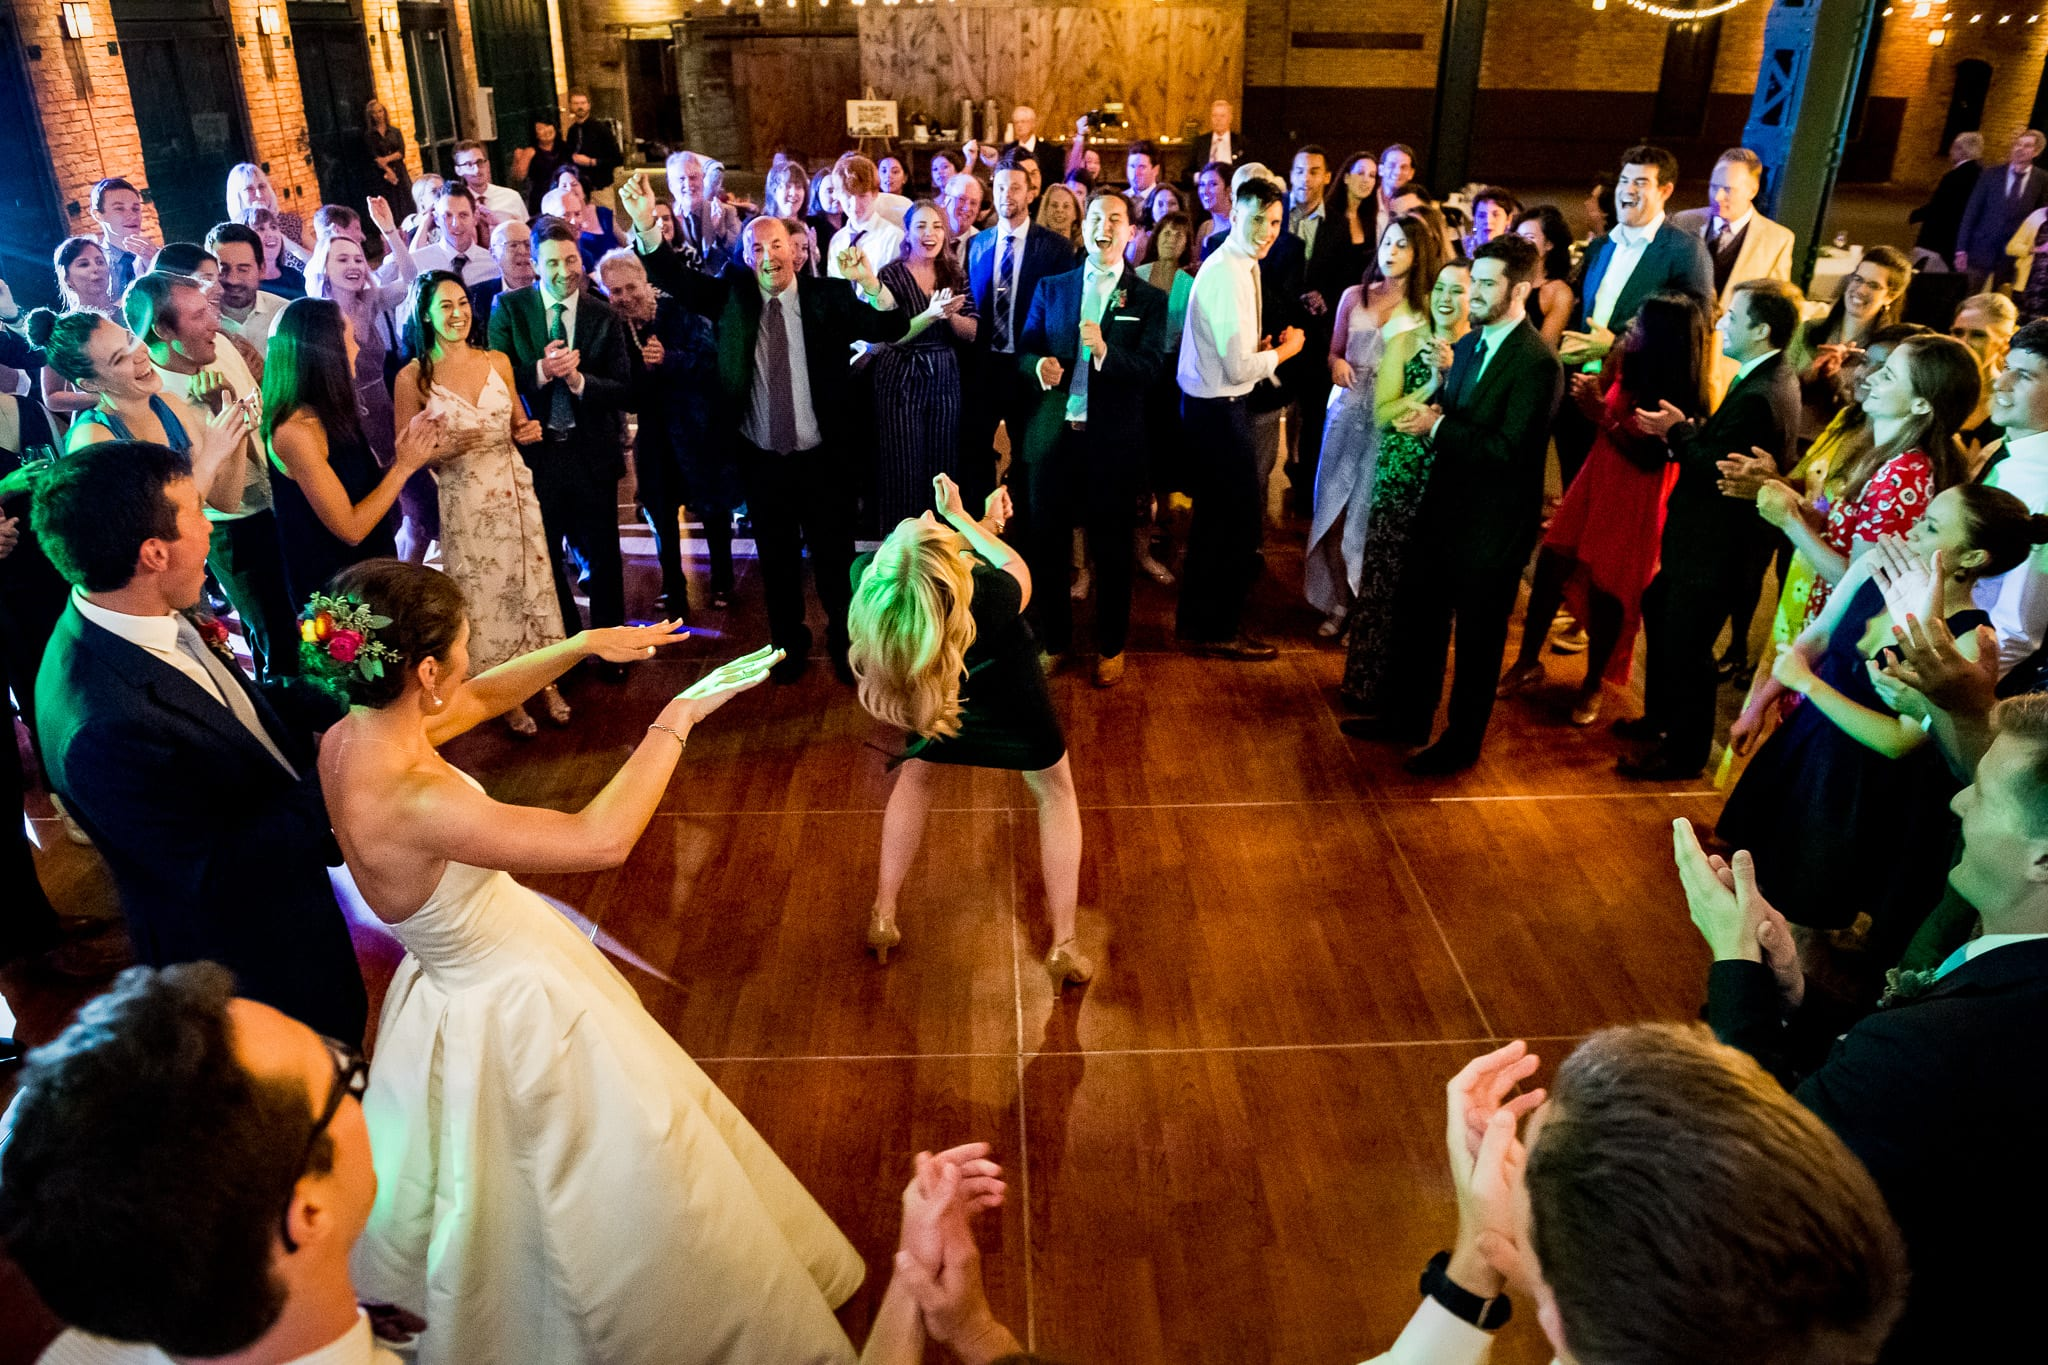 Wedding guest dips way back in the dance circle